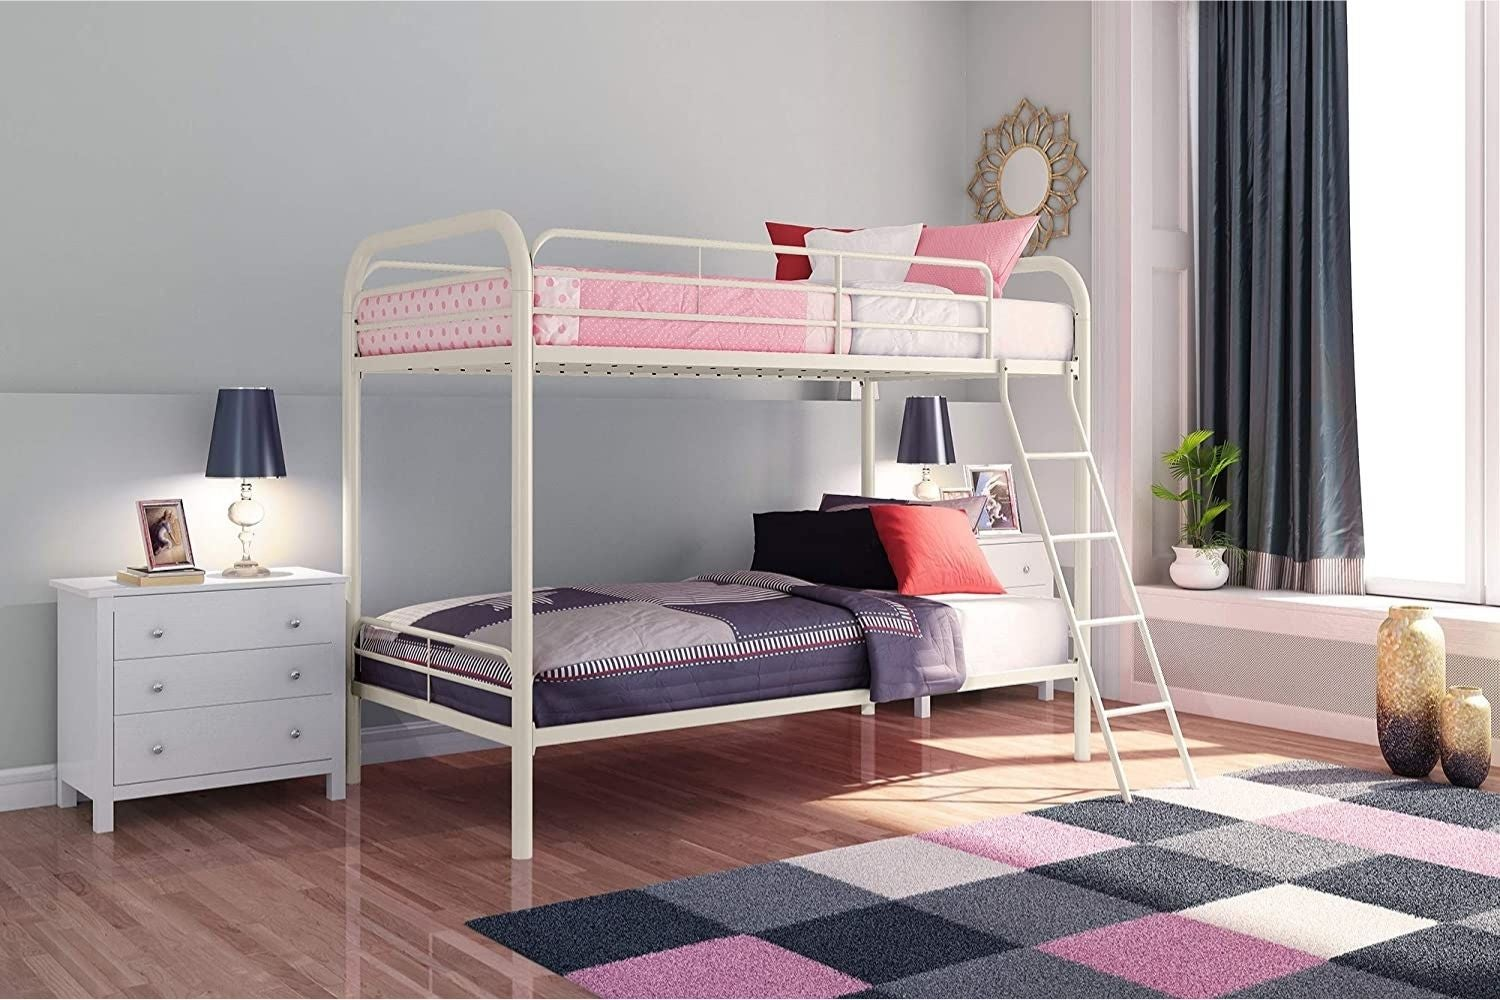 The Best Bunk Beds For The Home Bob Vila